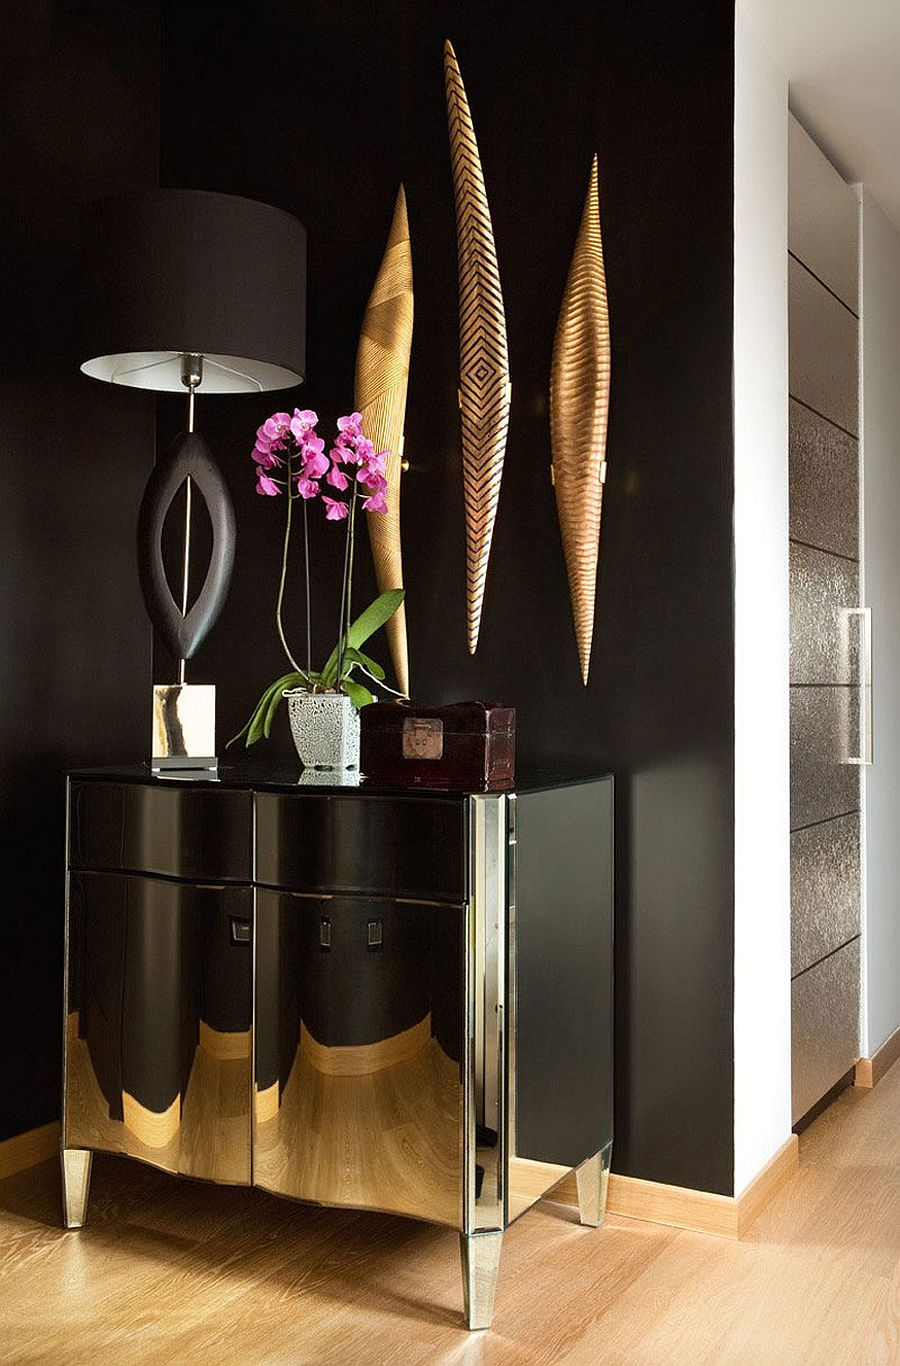 Wonderful use of black and gold inside the eclectic Venice home